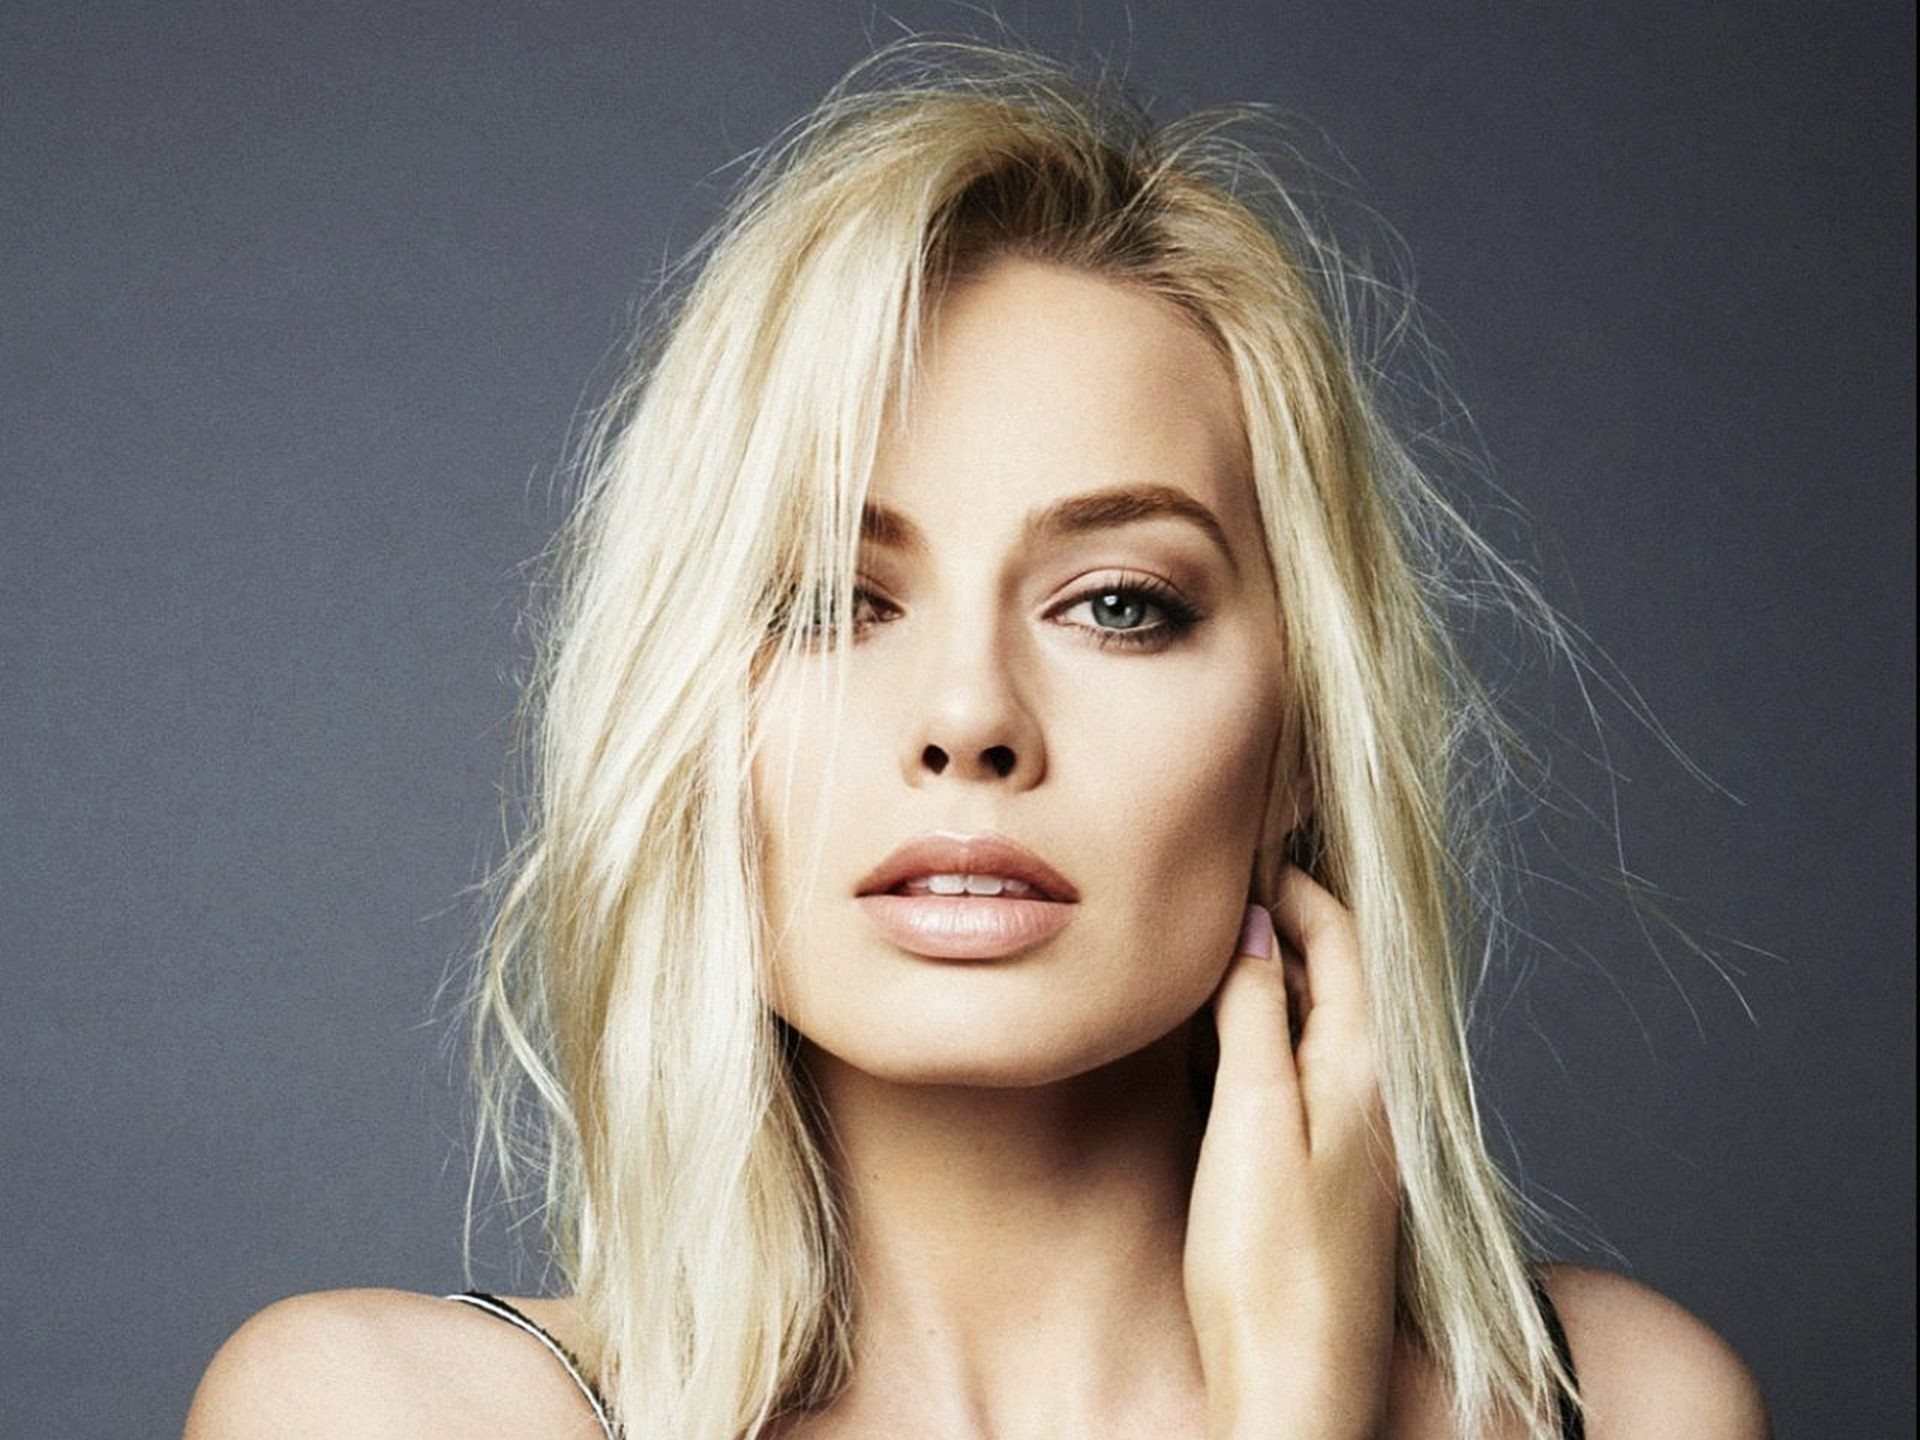 Margot Robbie Wallpapers HD Backgrounds Images Pics Photos 1920x1440